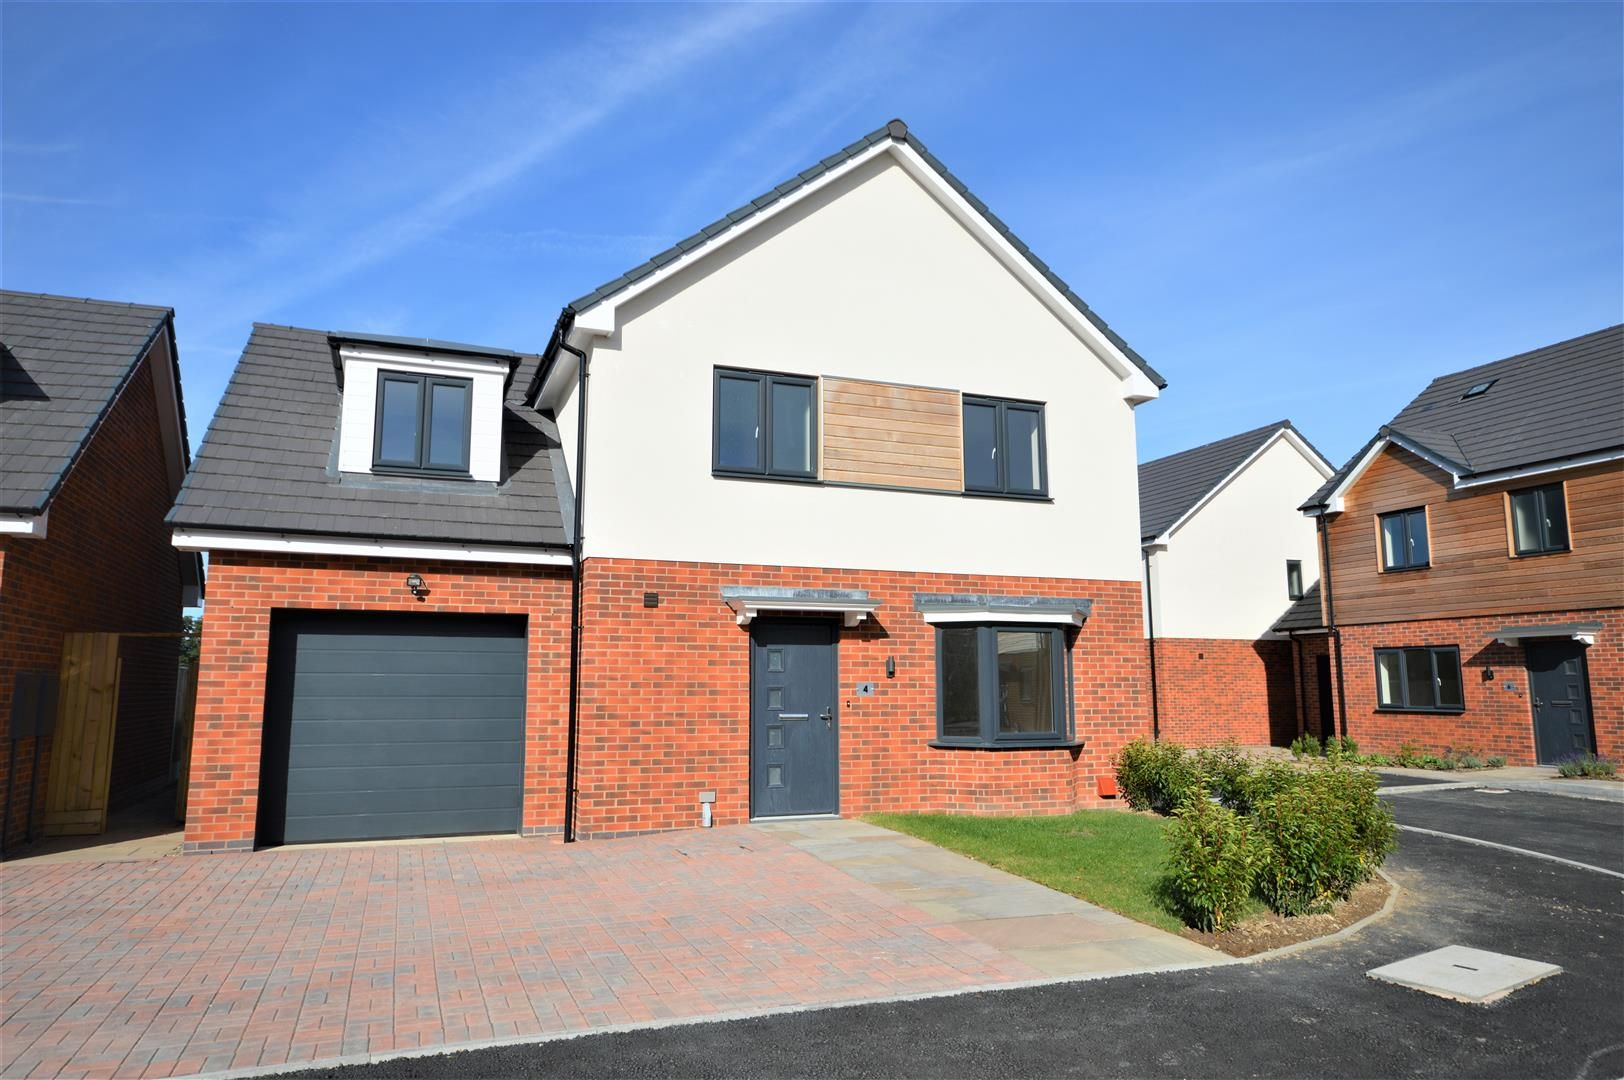 4 bed detached for sale in Kingsland 1